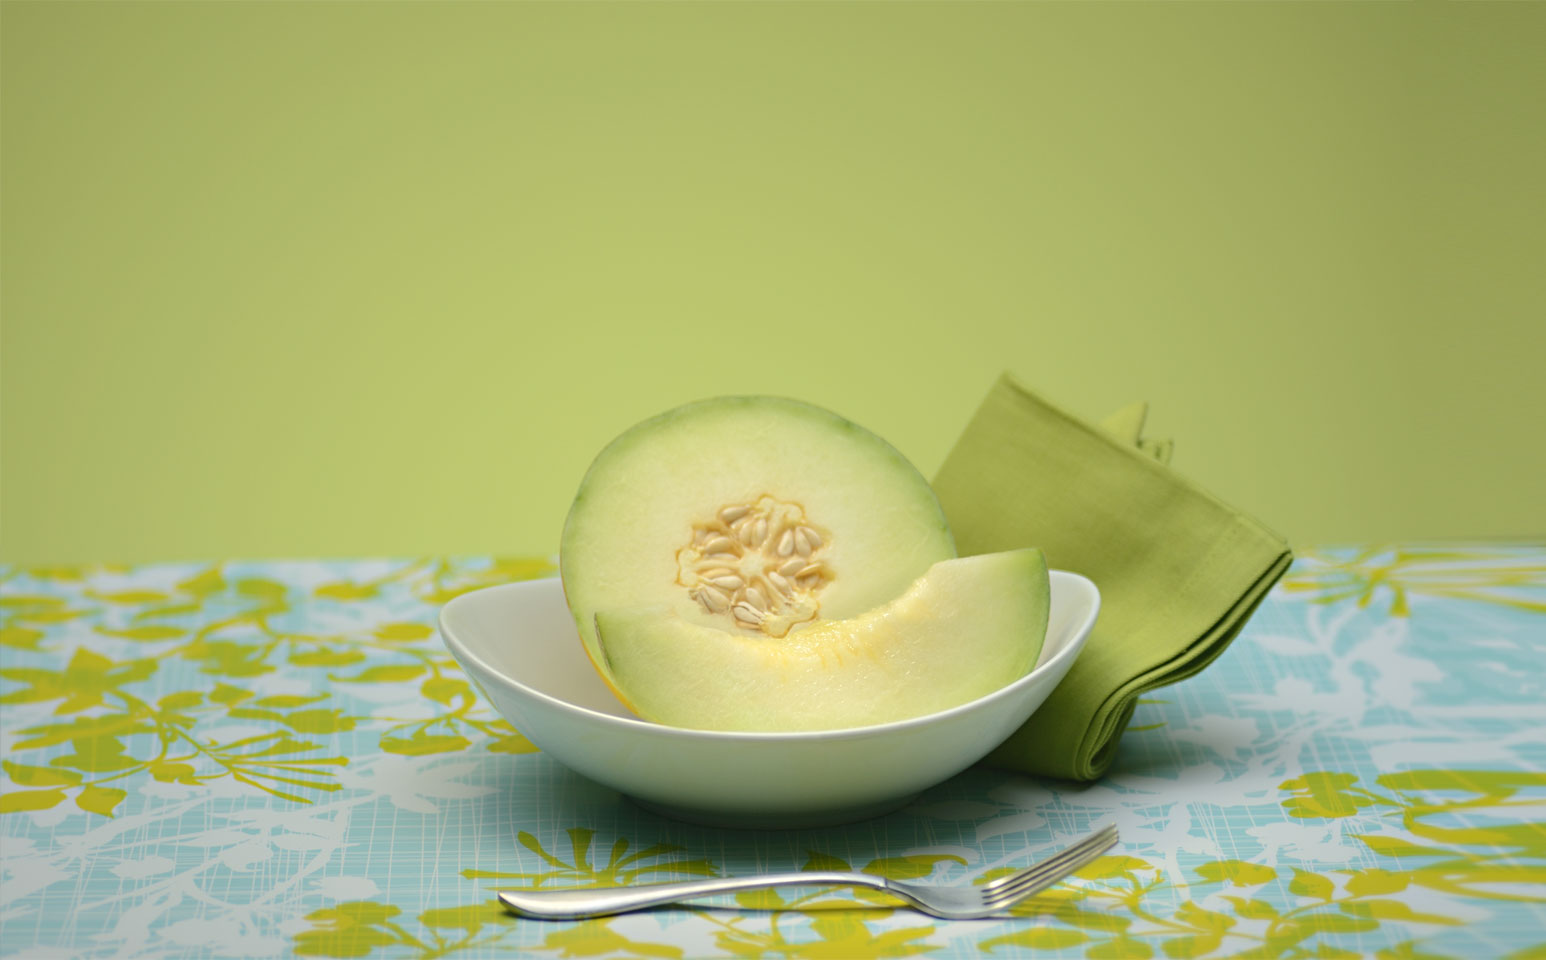 Sliced honeydew melon on a table